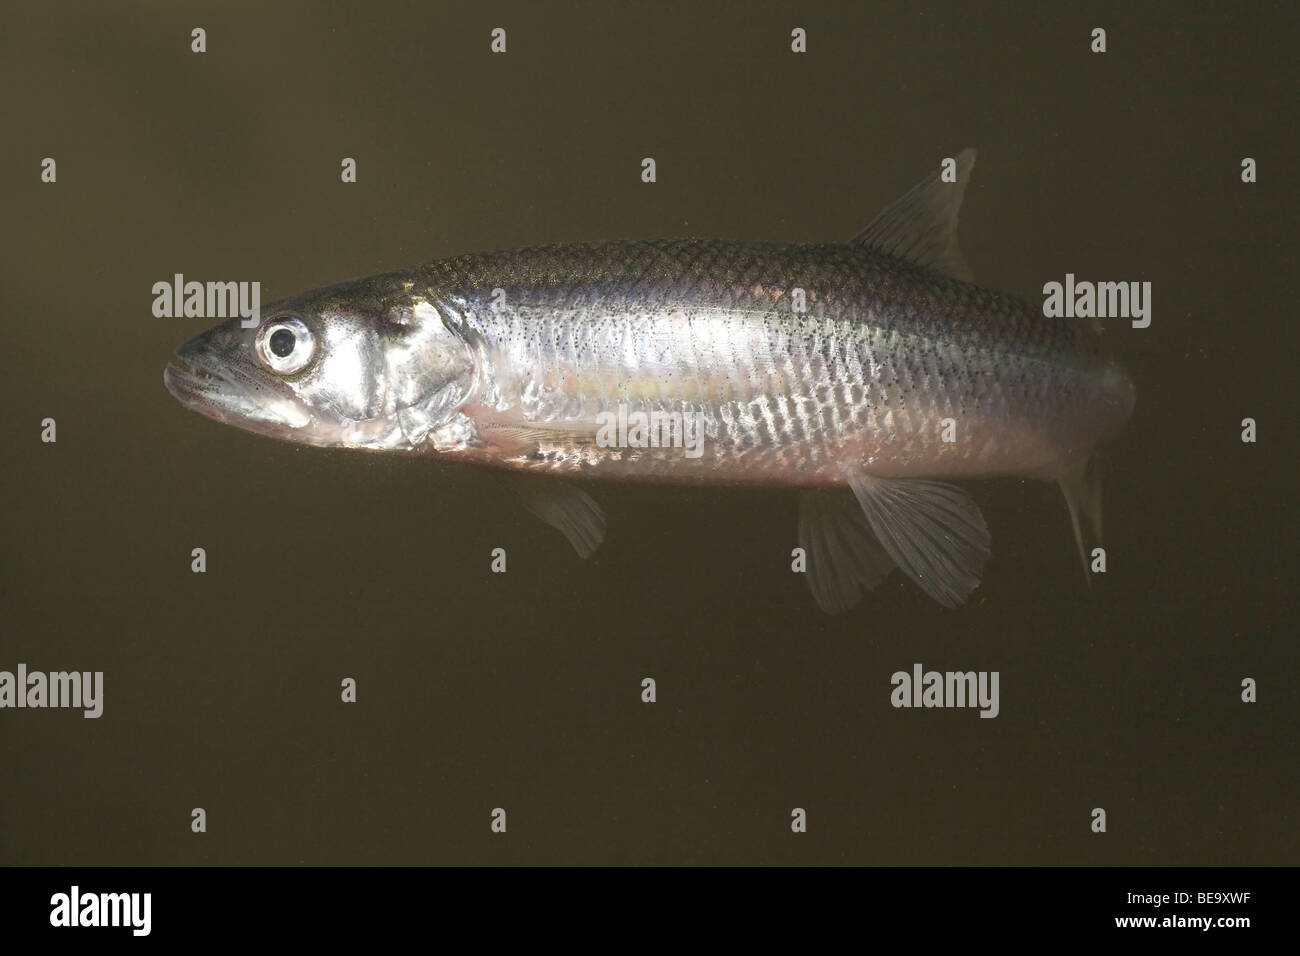 photo of an anadromous European Smelt with its teeth visible Stock Photo